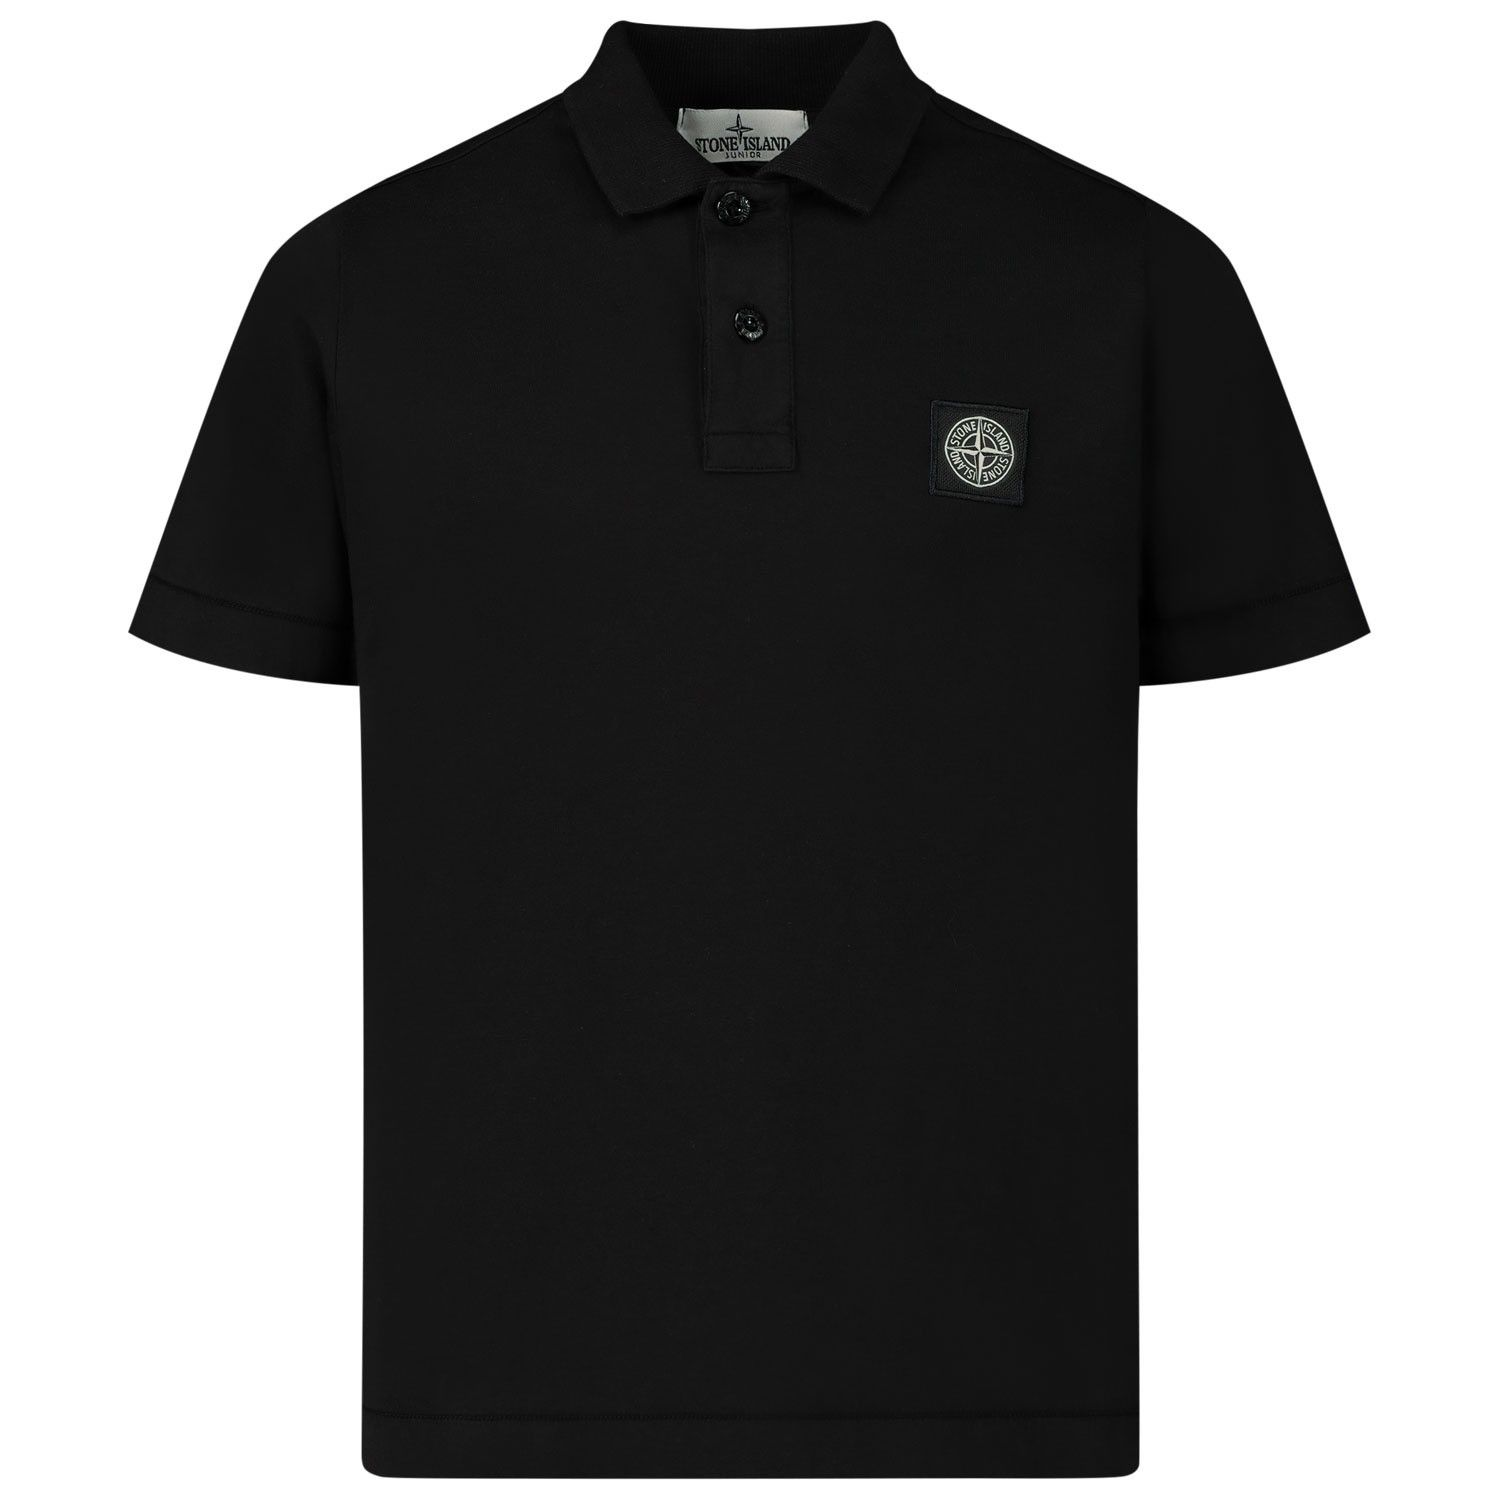 Picture of Stone Island 721620247 kids polo shirt black